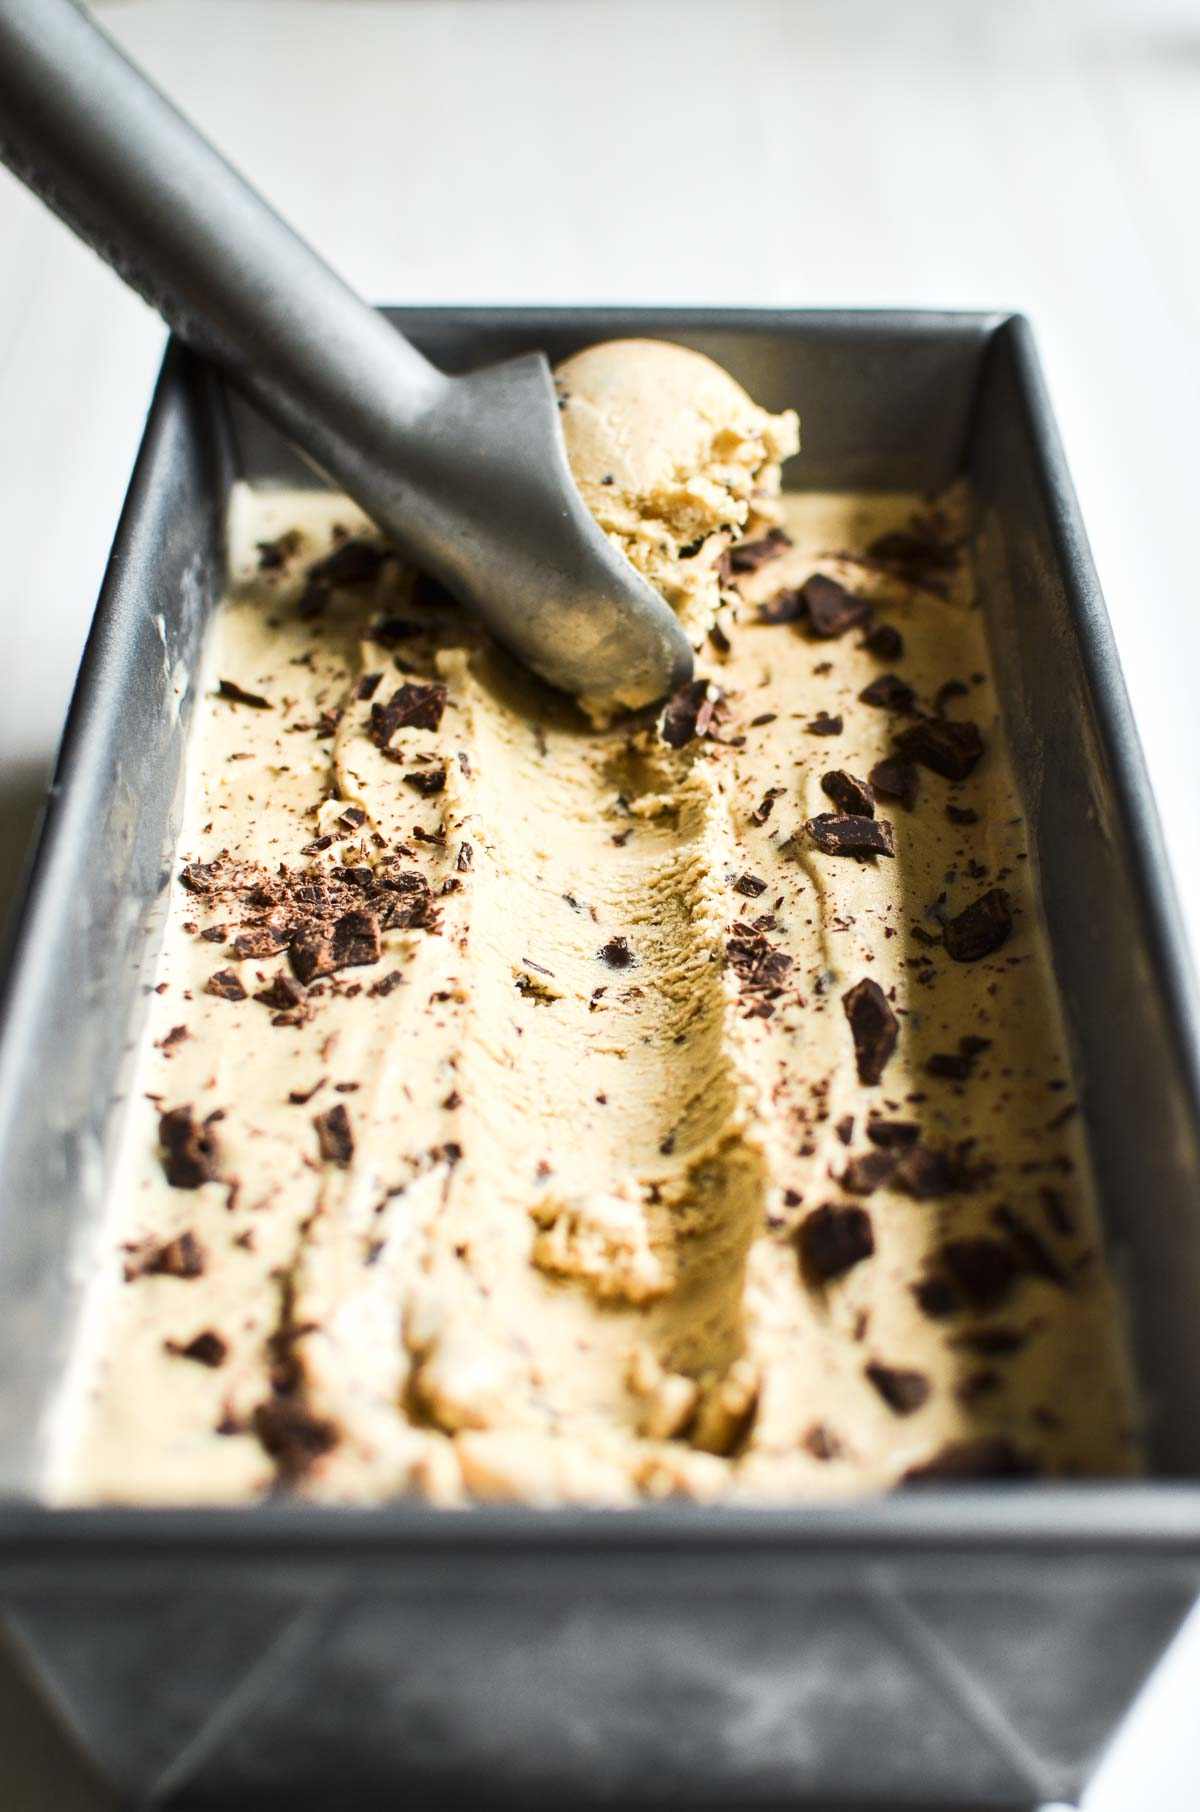 Chocolate chip cookie dough ice cream being scooped out of a loaf pan.